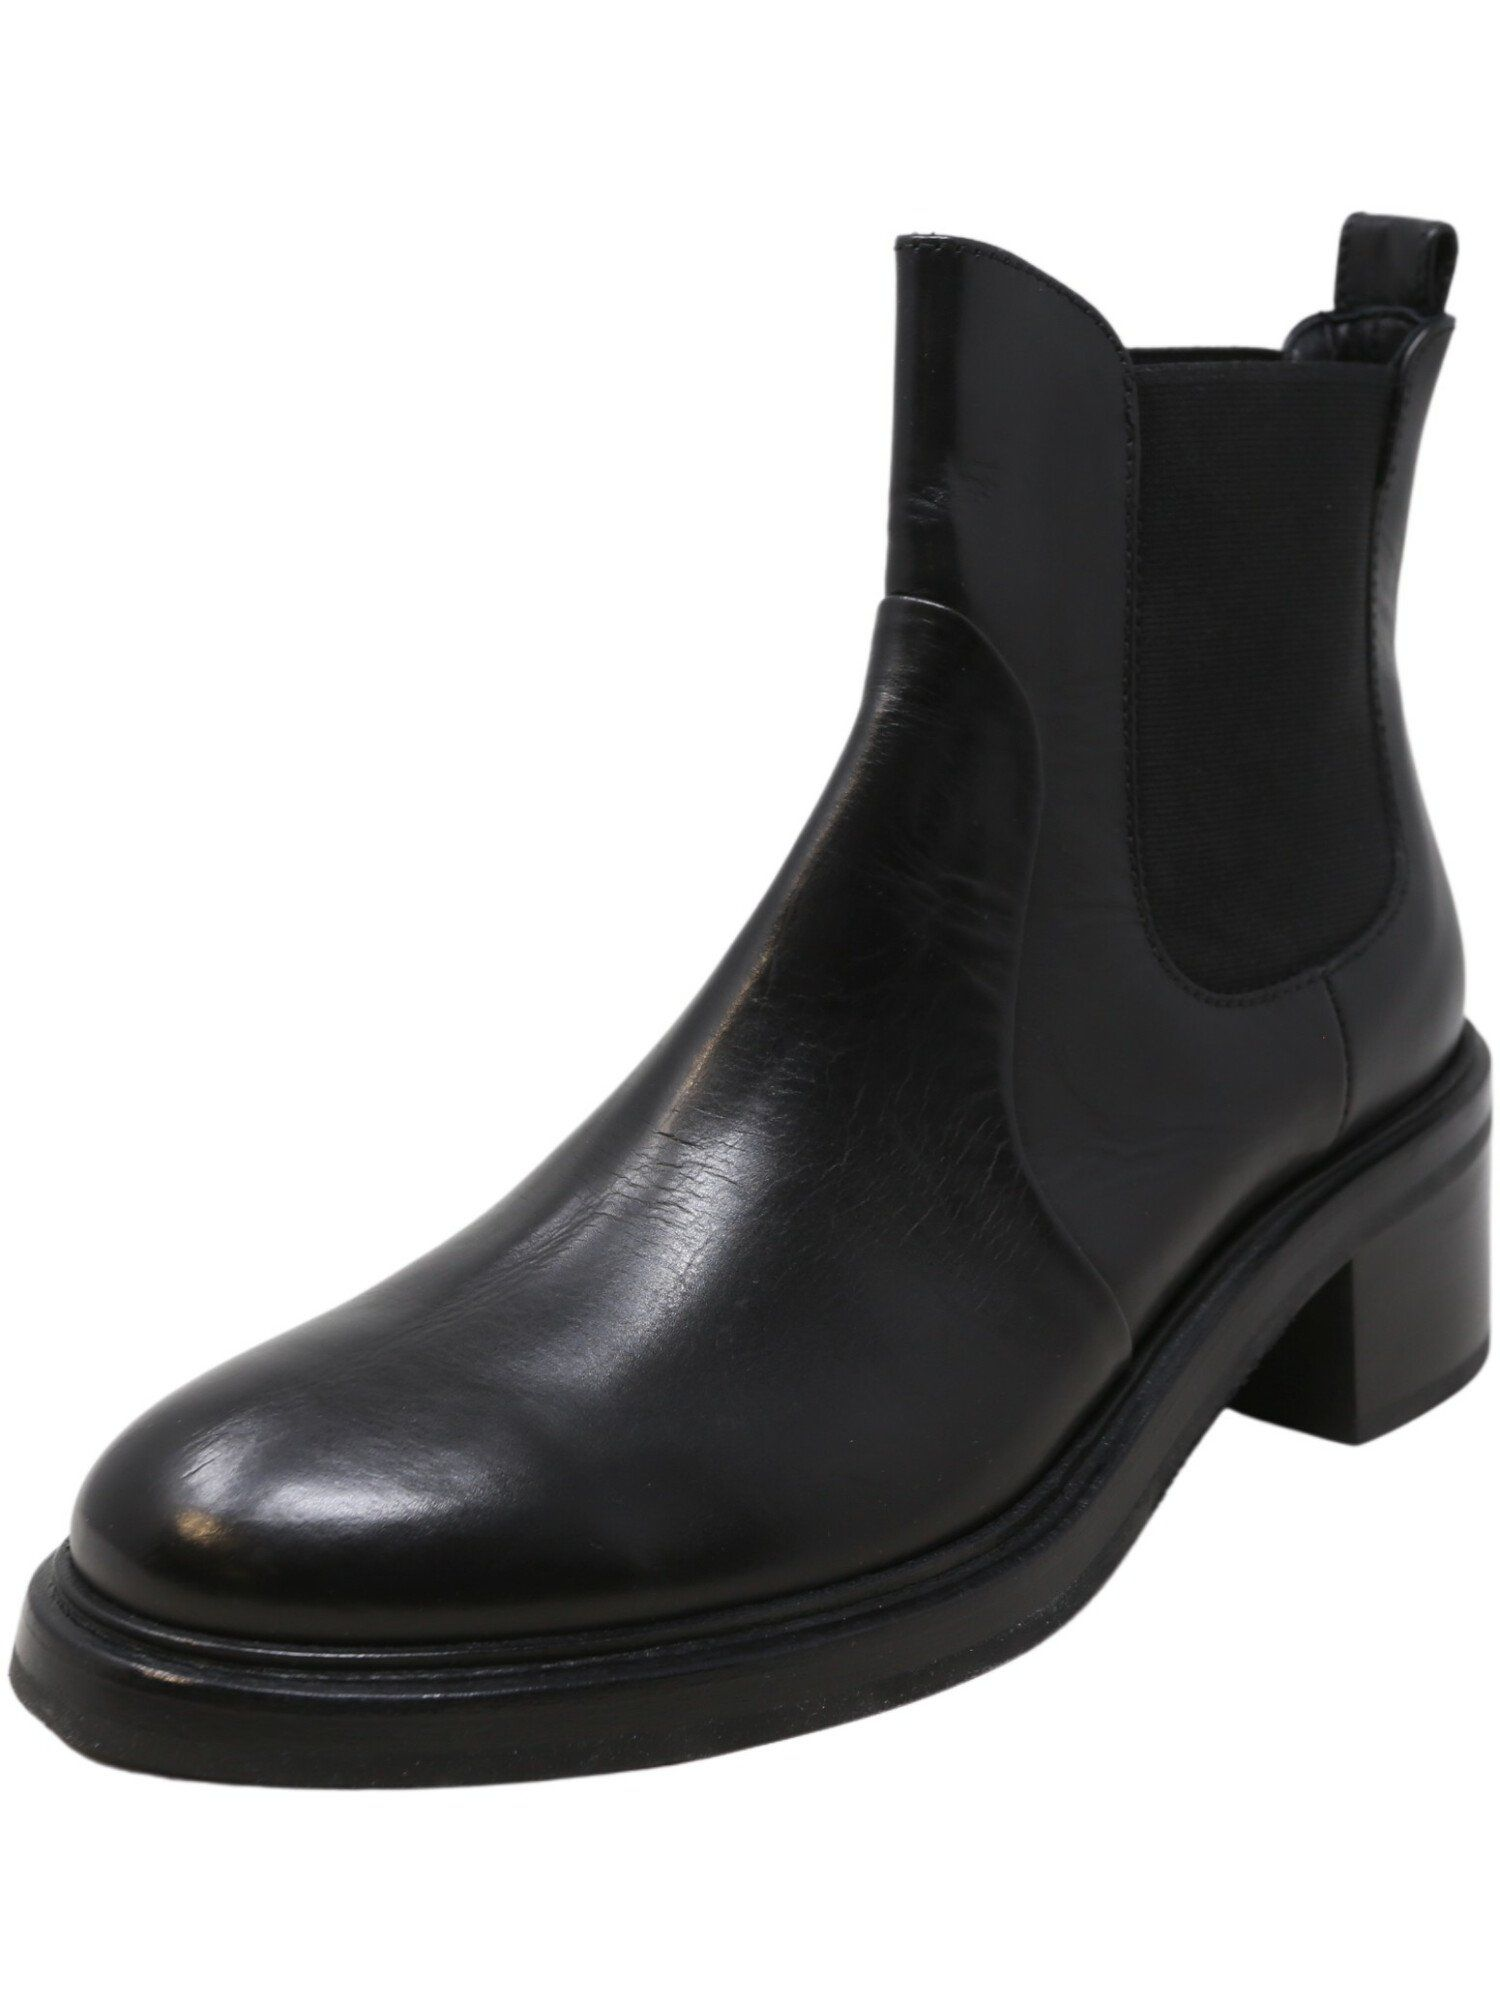 AGL Women's Heeled Chelsea Boots Black Ankle-High Leather Boot - 9.5 M